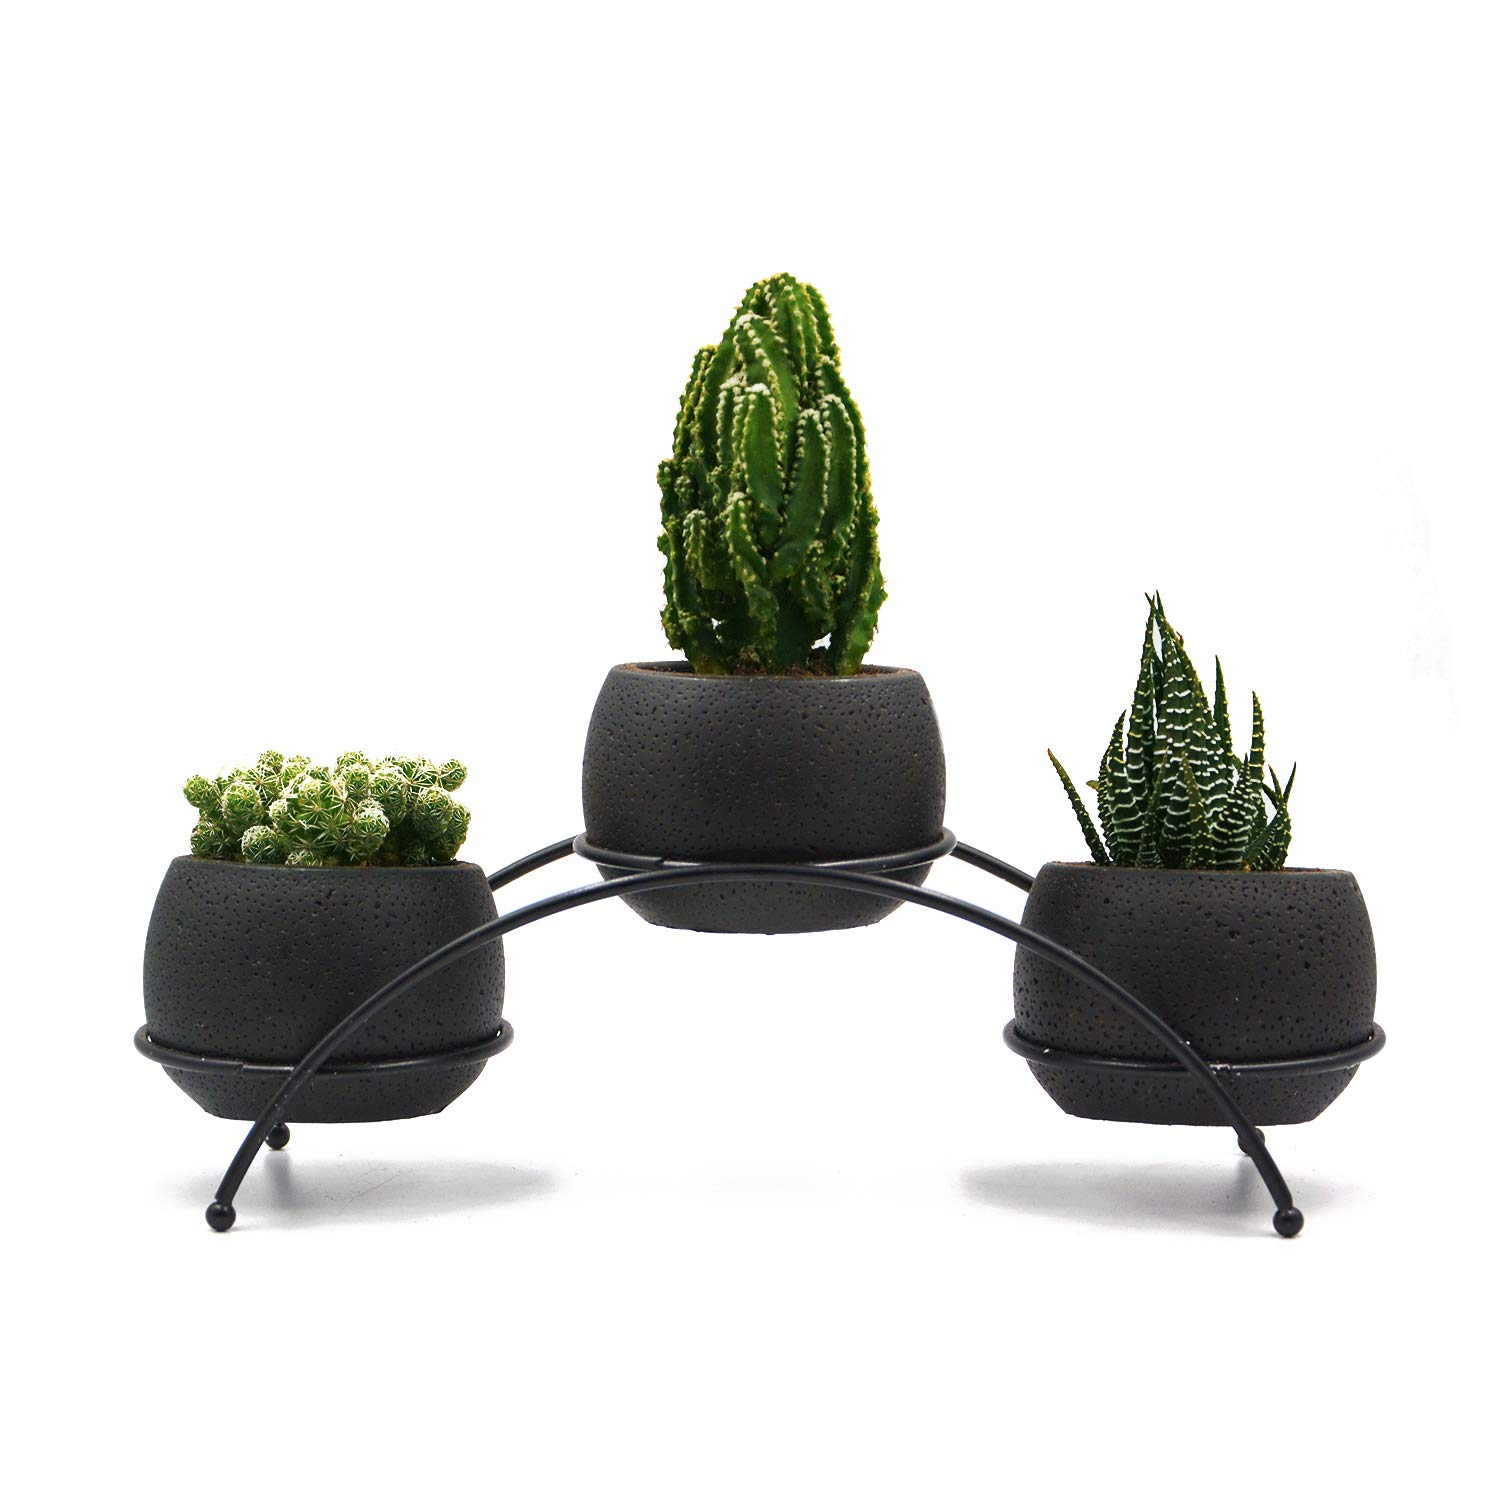 UDMG 3pcs Mini Black Succulent Cactus Cement Planter with a Iron Arch Frame Stand Holder, Small Plant Pot with Drainage, Modern Decorative Home Office Desk Garden Indoor Decoration